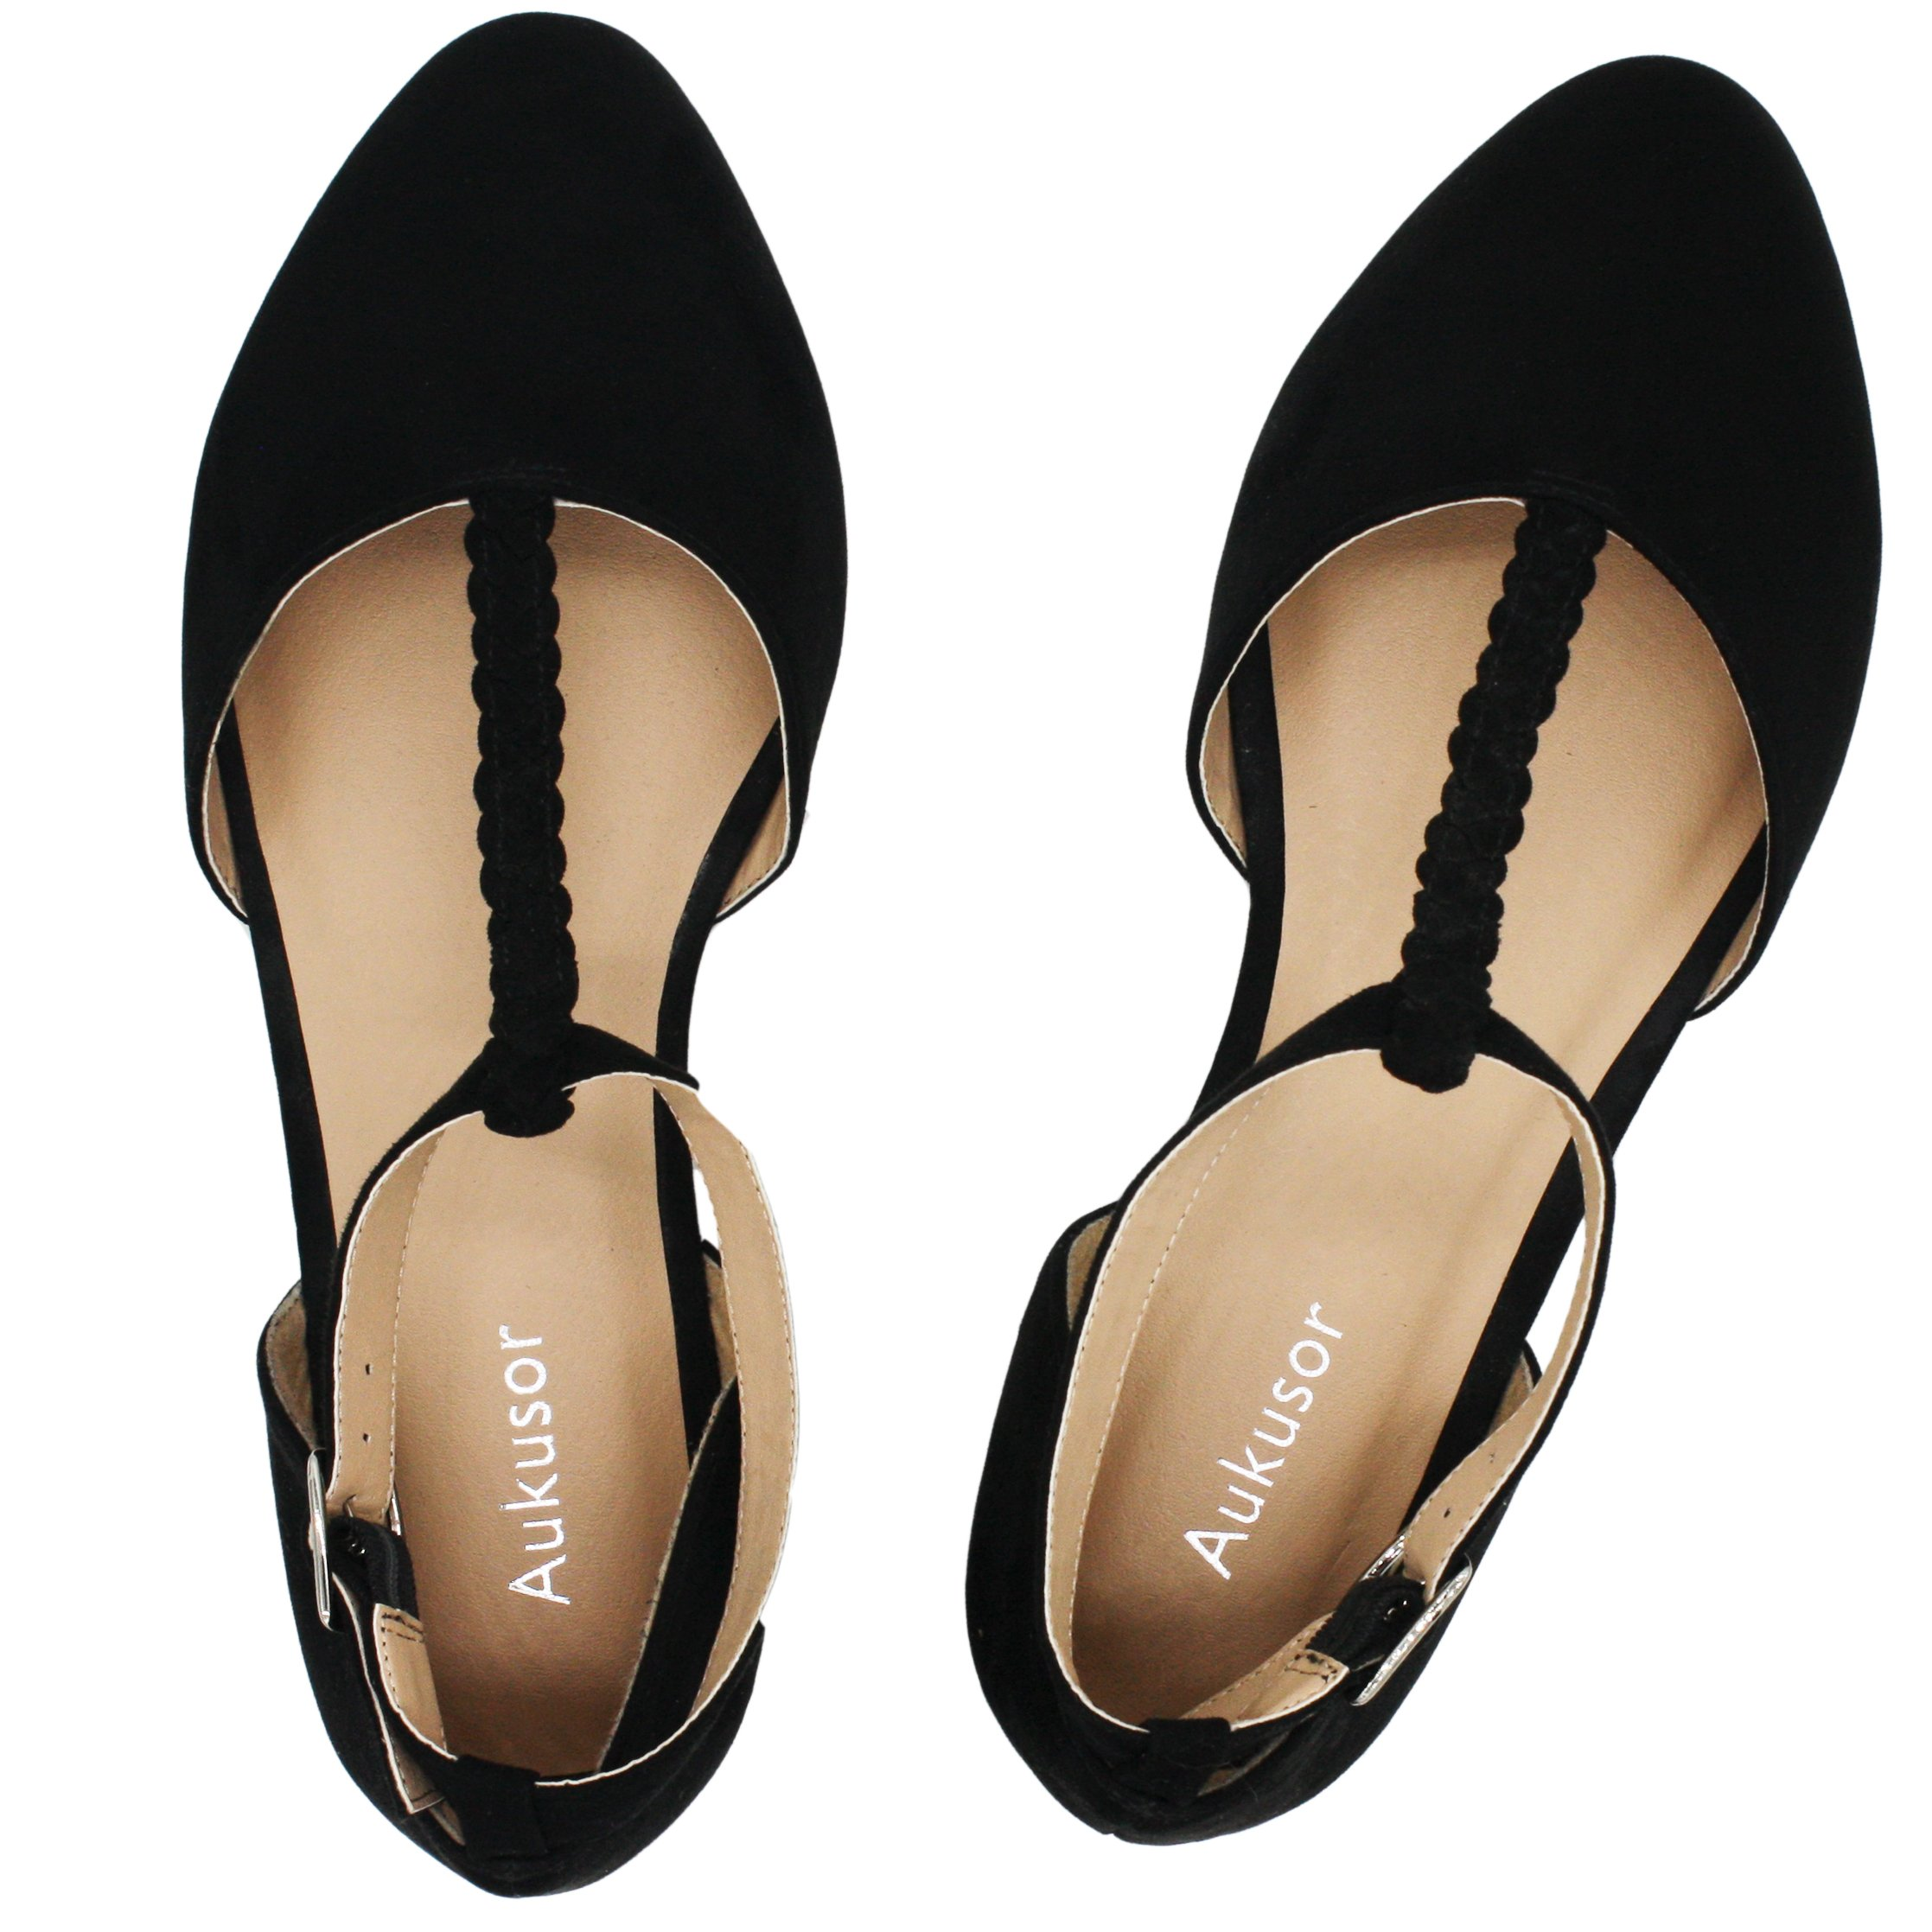 Aukusor Women's Wide Ballet Flat Shoes -T-Strap Comfort Light Pointed Toe Slip on Casual Shoes. (180315 Black 10W)